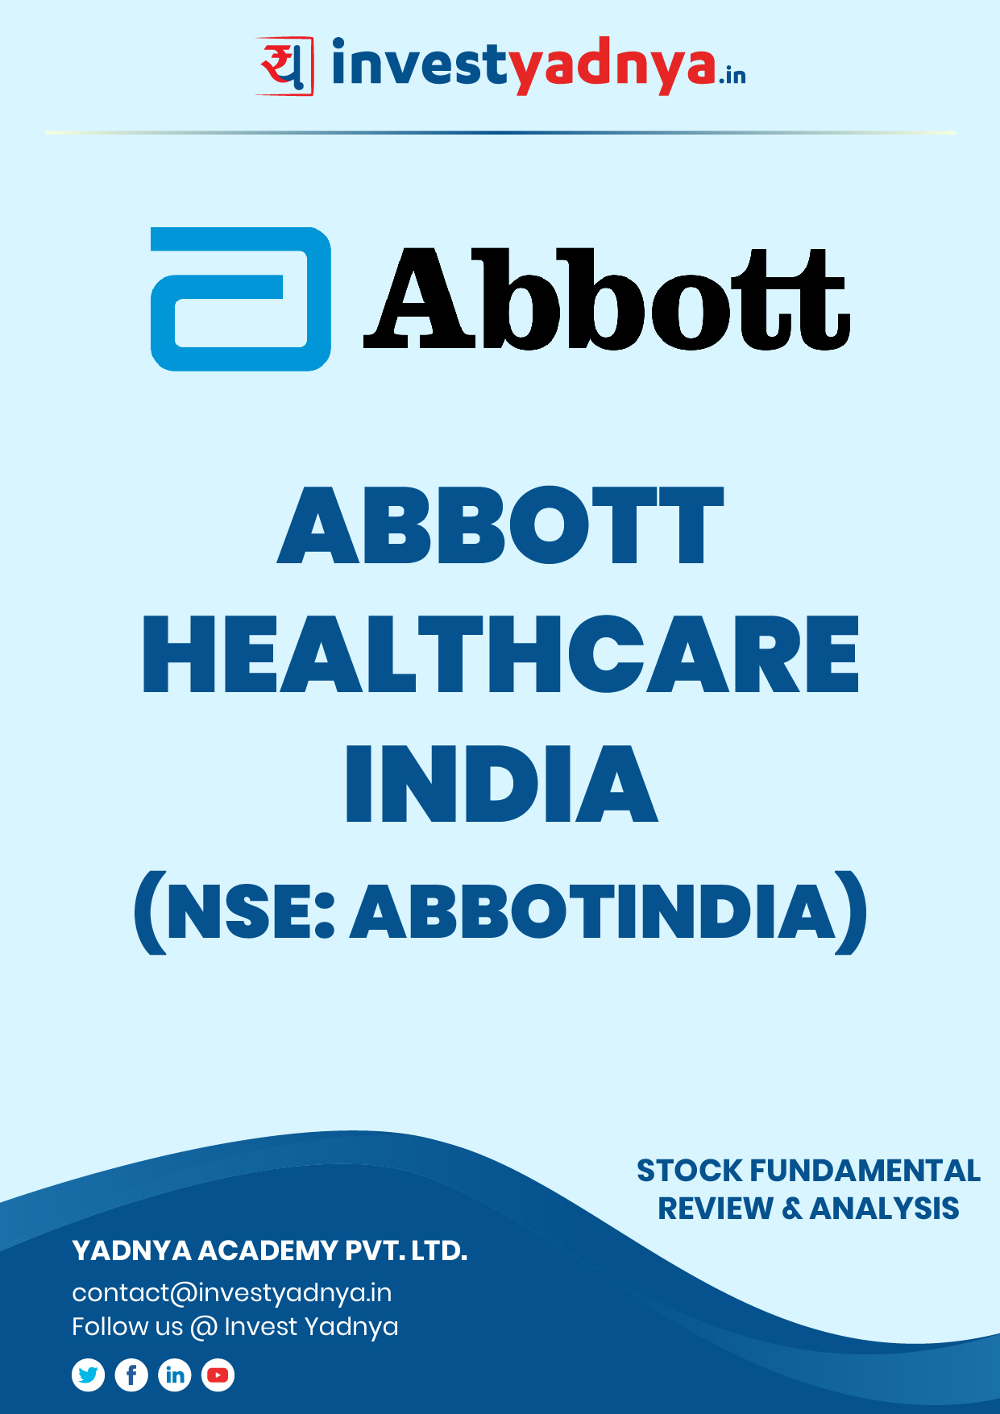 This e-book contains in-depth fundamental analysis of Abbott India considering both Financial and Equity Research Parameters. It reviews the company, industry competitors, governance, financials, and valuations. ✔ Detailed Research ✔ Quality Reports